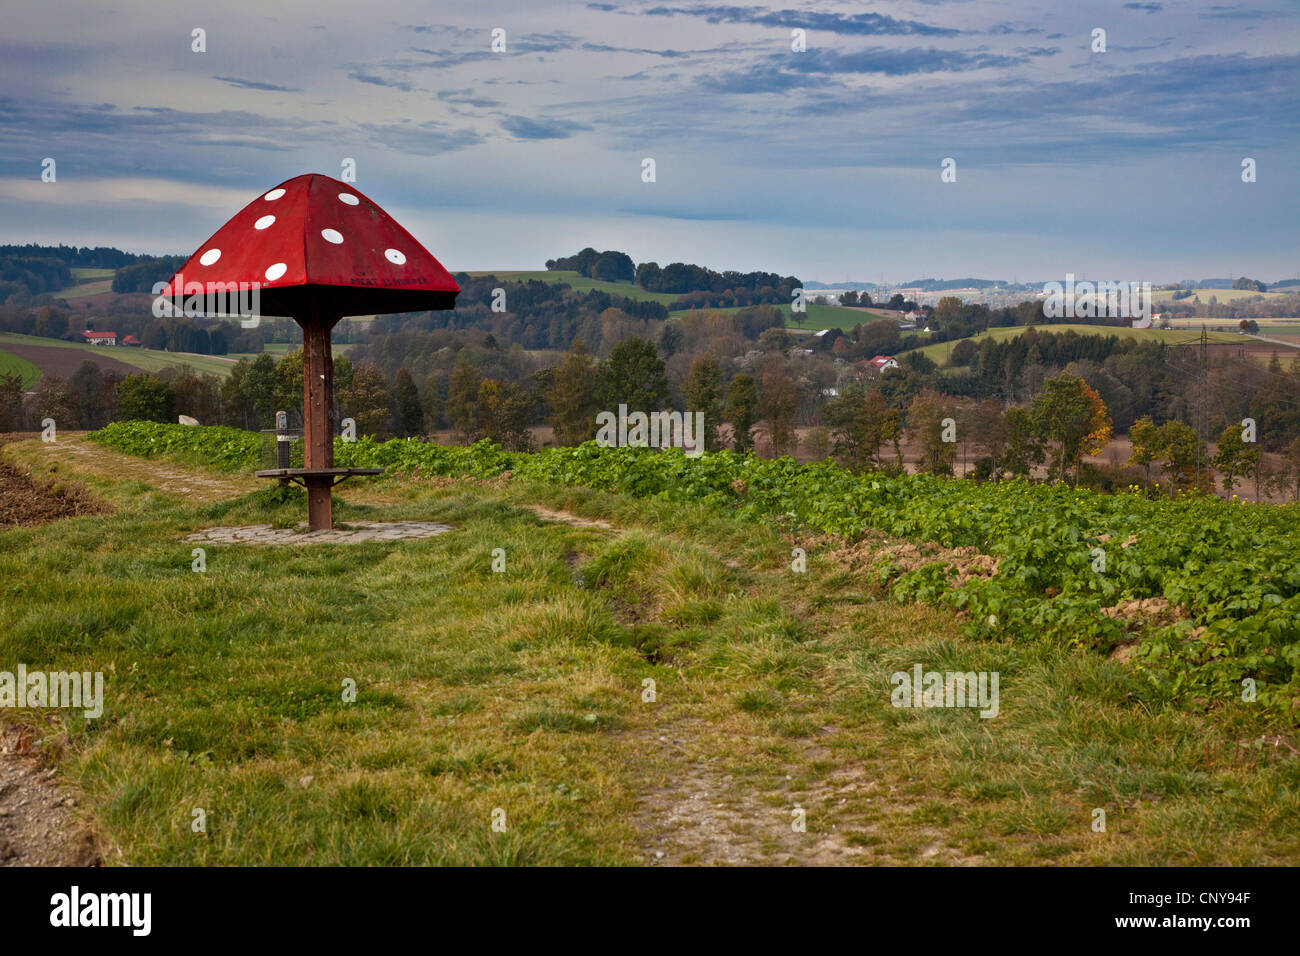 shelter for hikers modelled on a fly agaric on a ridge of hills between fields, Germany, Bavaria, Isental, Dorfen - Stock Image